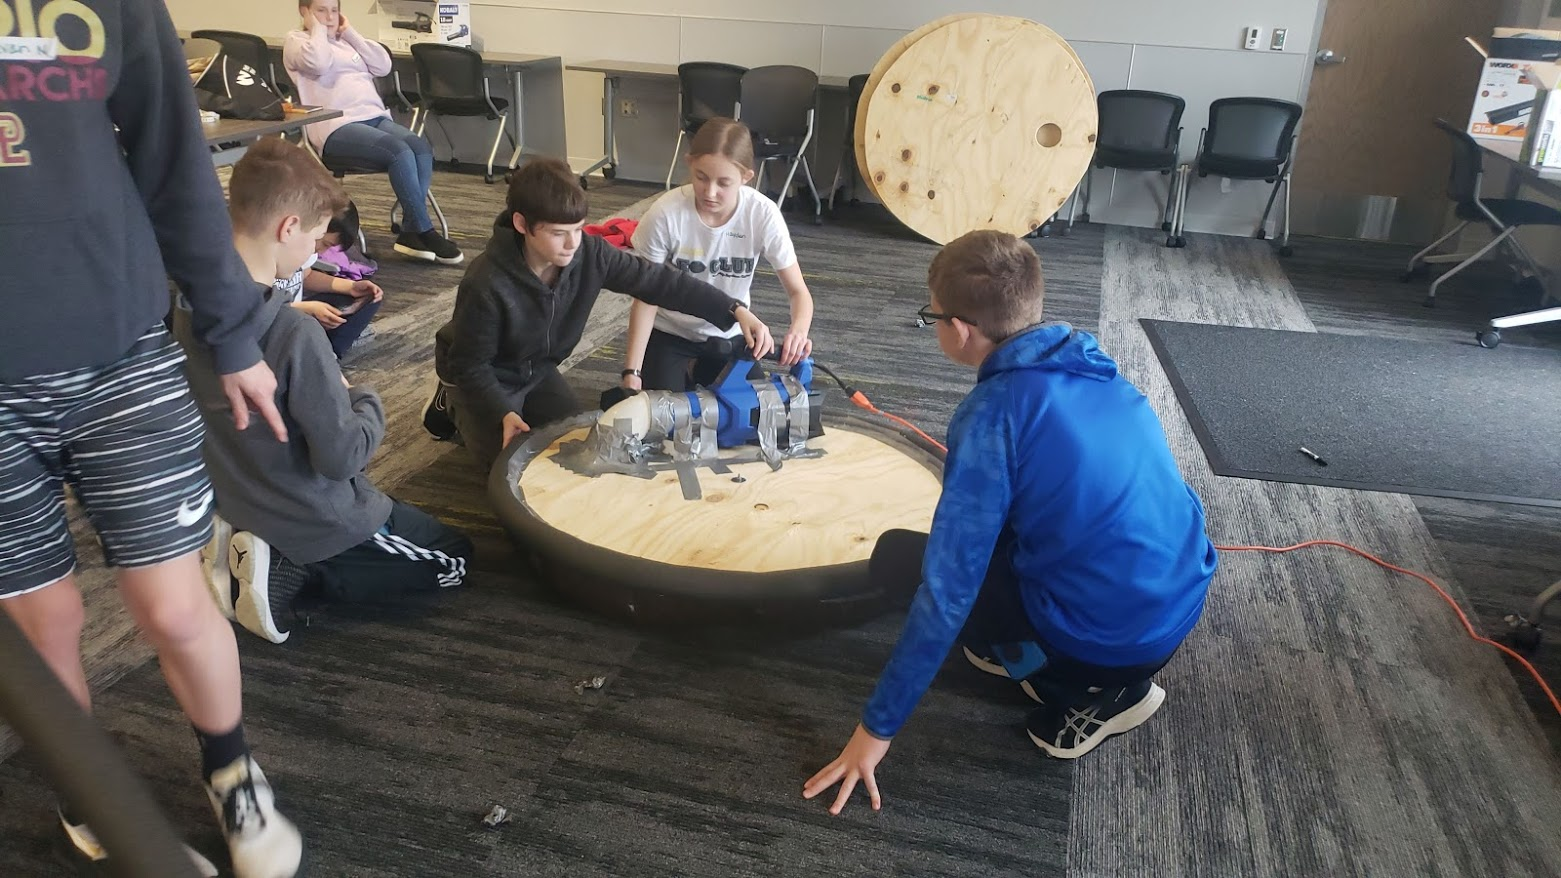 Kids with a Hovercraft